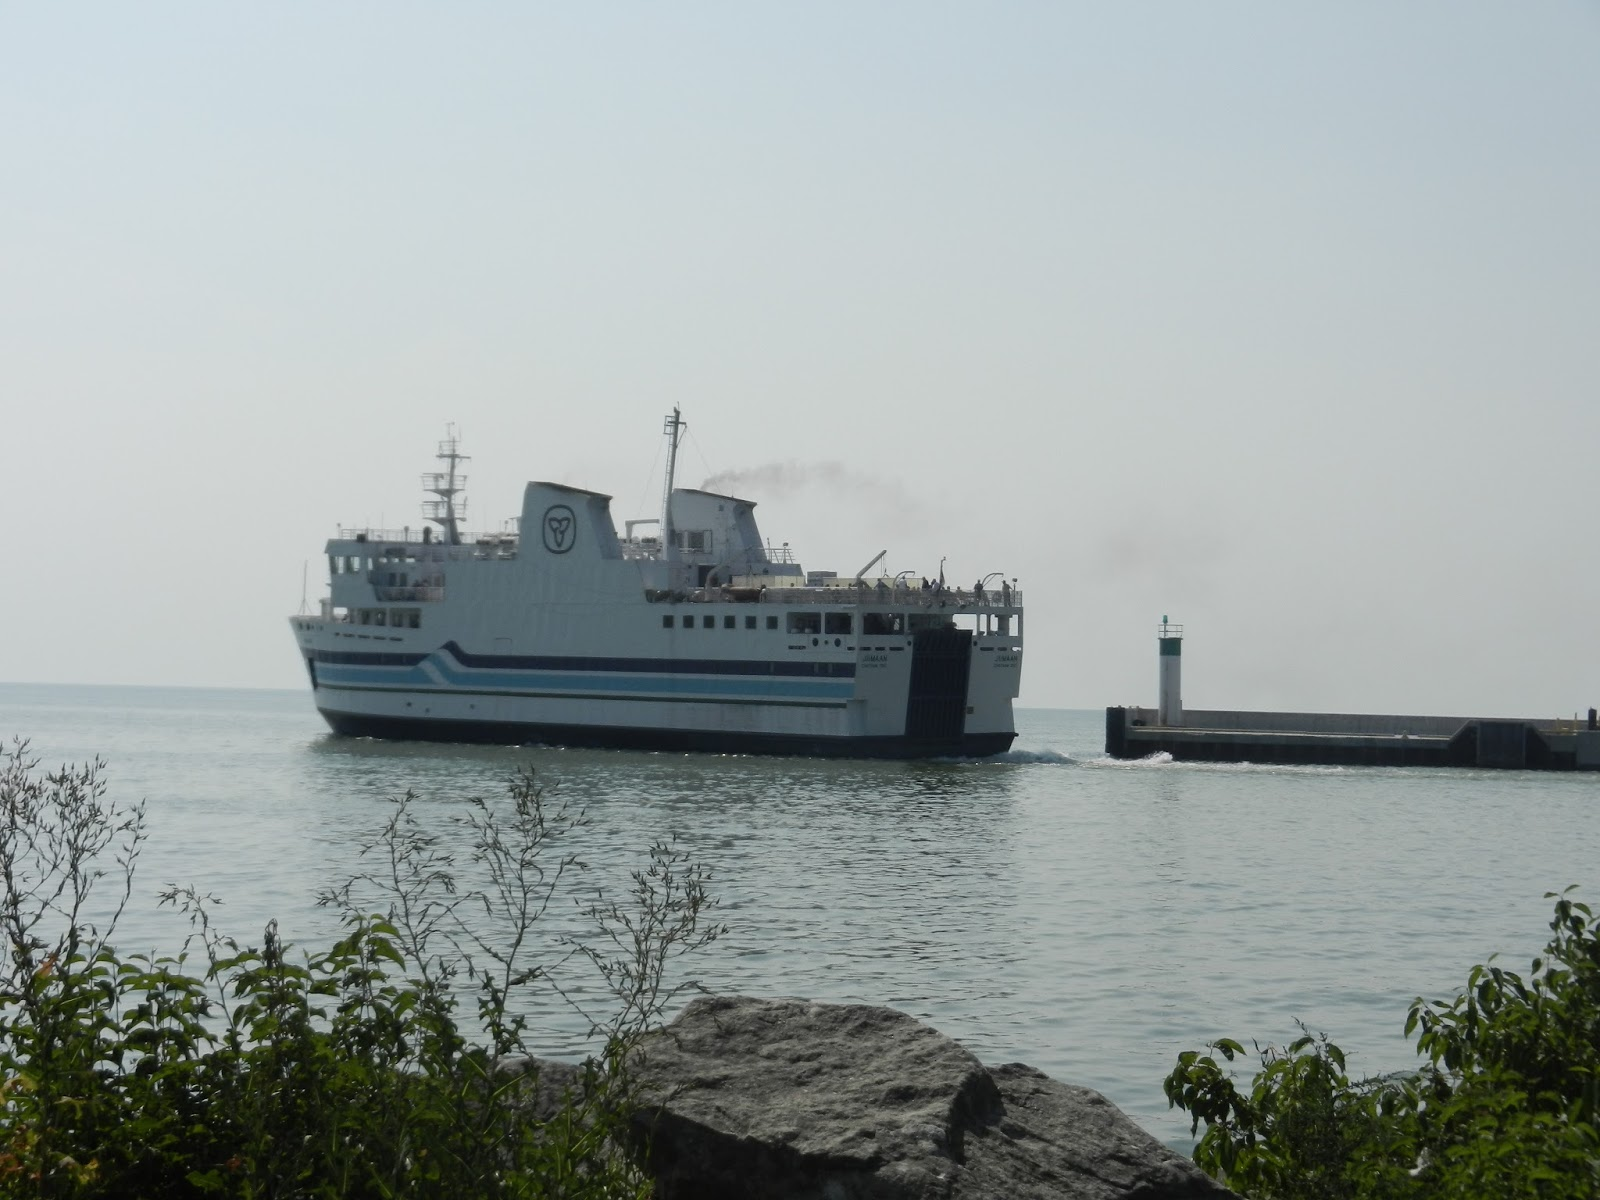 Pelee Island Guided Tour